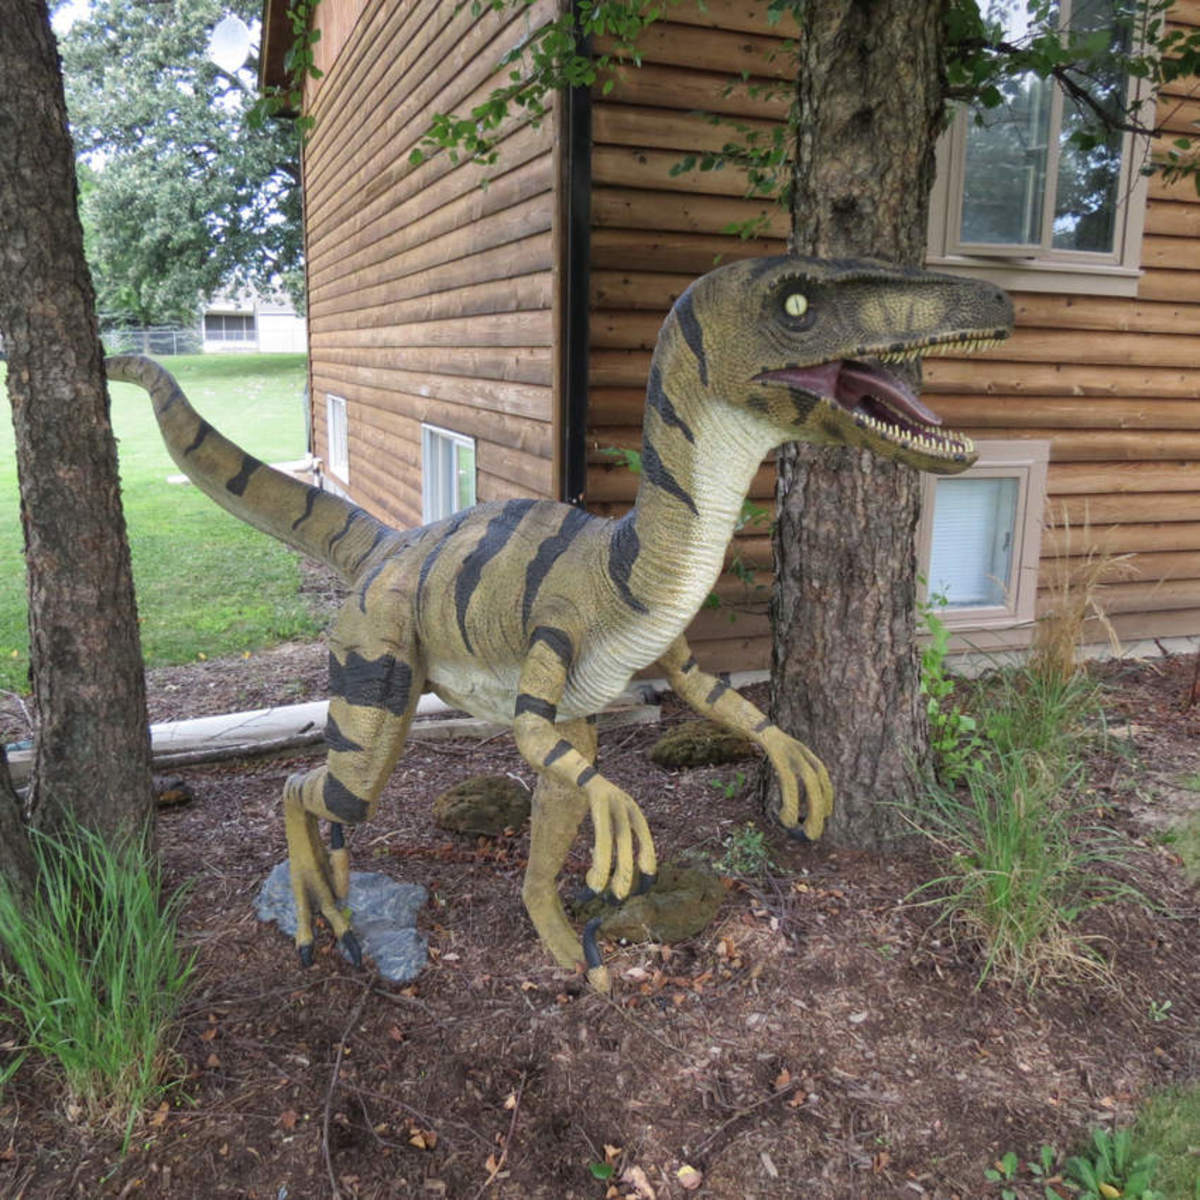 Play rap music in the house with the window open when you want to keep your raptor playing outside!